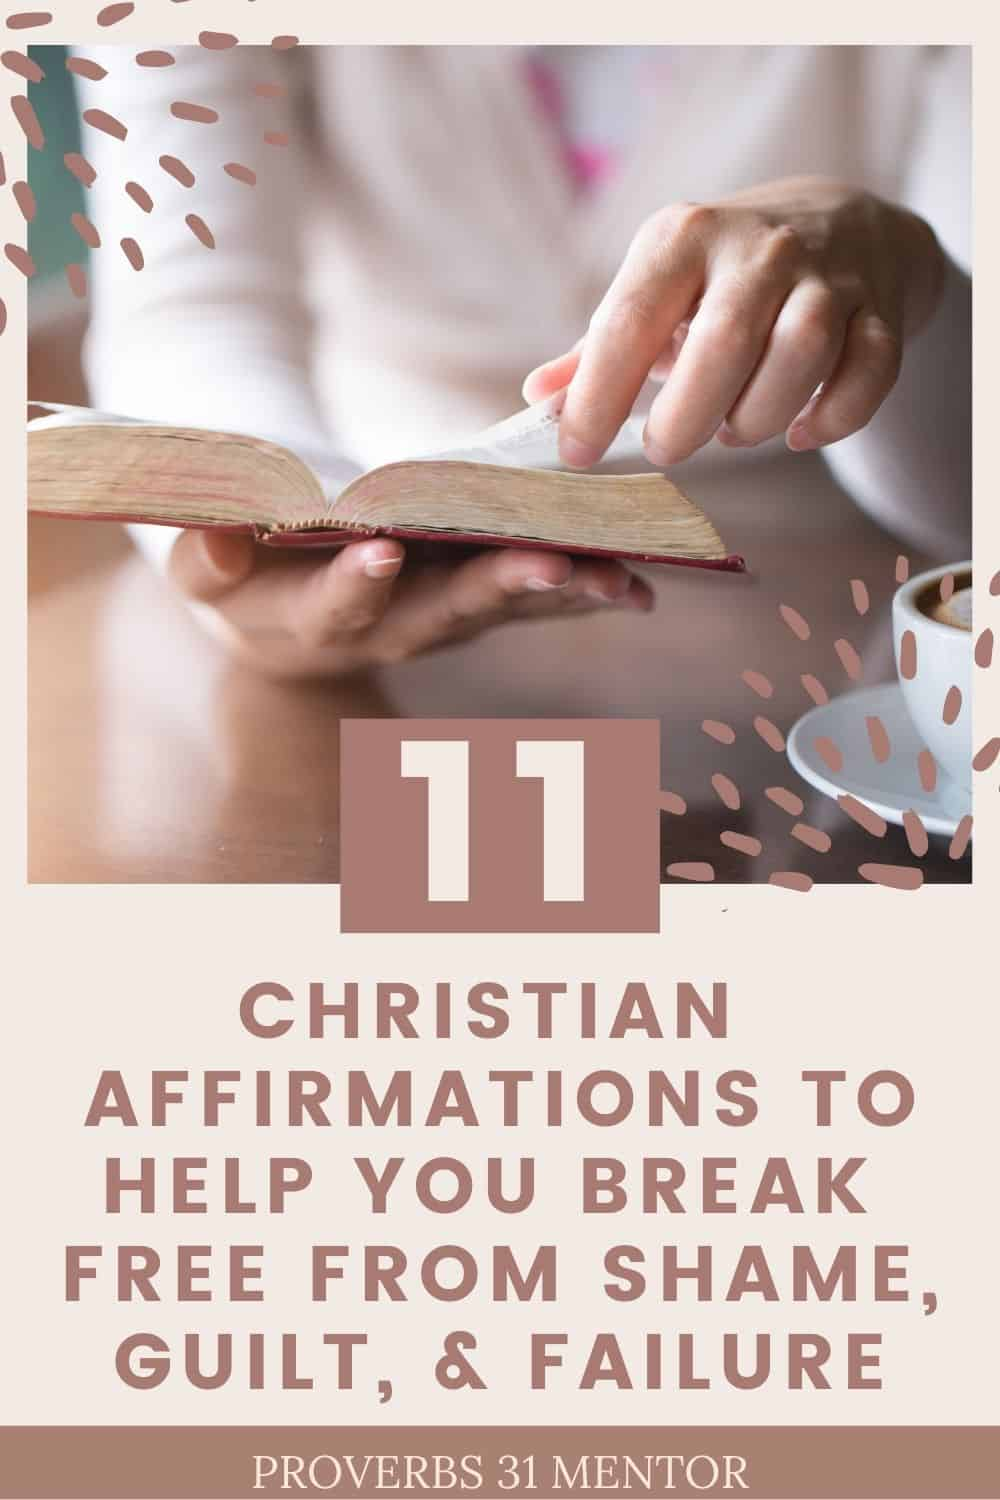 title= 11 Christian affirmations to help you break free from shame, guilt, and failure picture- woman reading Bible